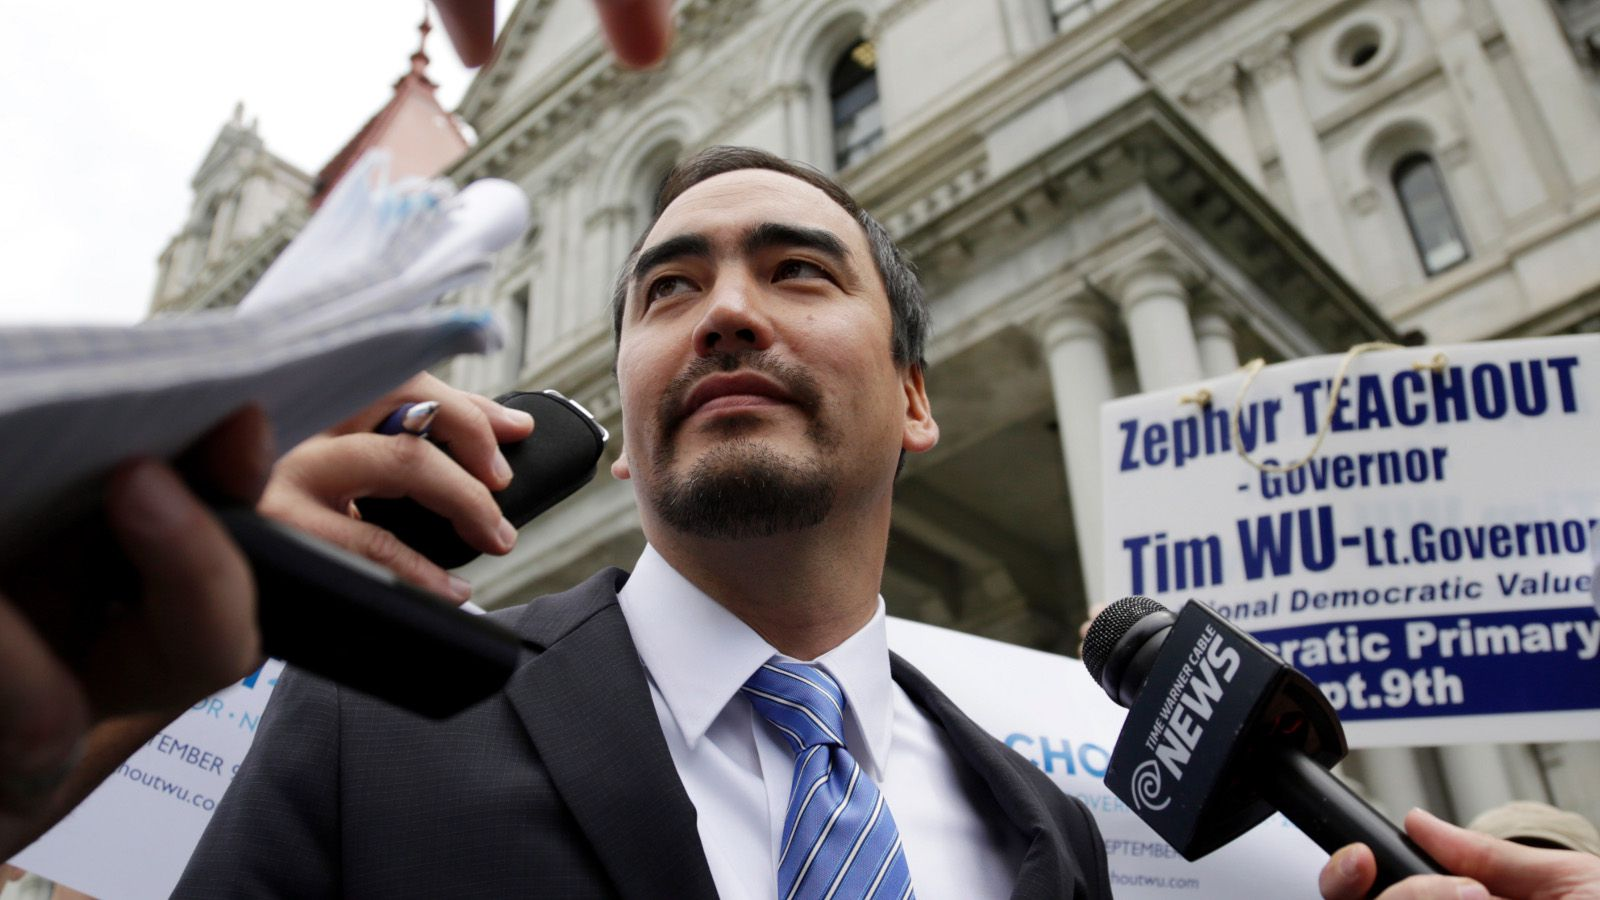 Tim Wu, a candidate for New York lieutenant governor, talks to reporters outside the state Capitol on Thursday, Aug. 28, 2014, in Albany, N.Y. The New York Times has endorsed Wu, who is running alongside liberal gubernatorial candidate Zephyr Teachout, over Gov. Andrew Cuomo's running mate Kathy Hochul.